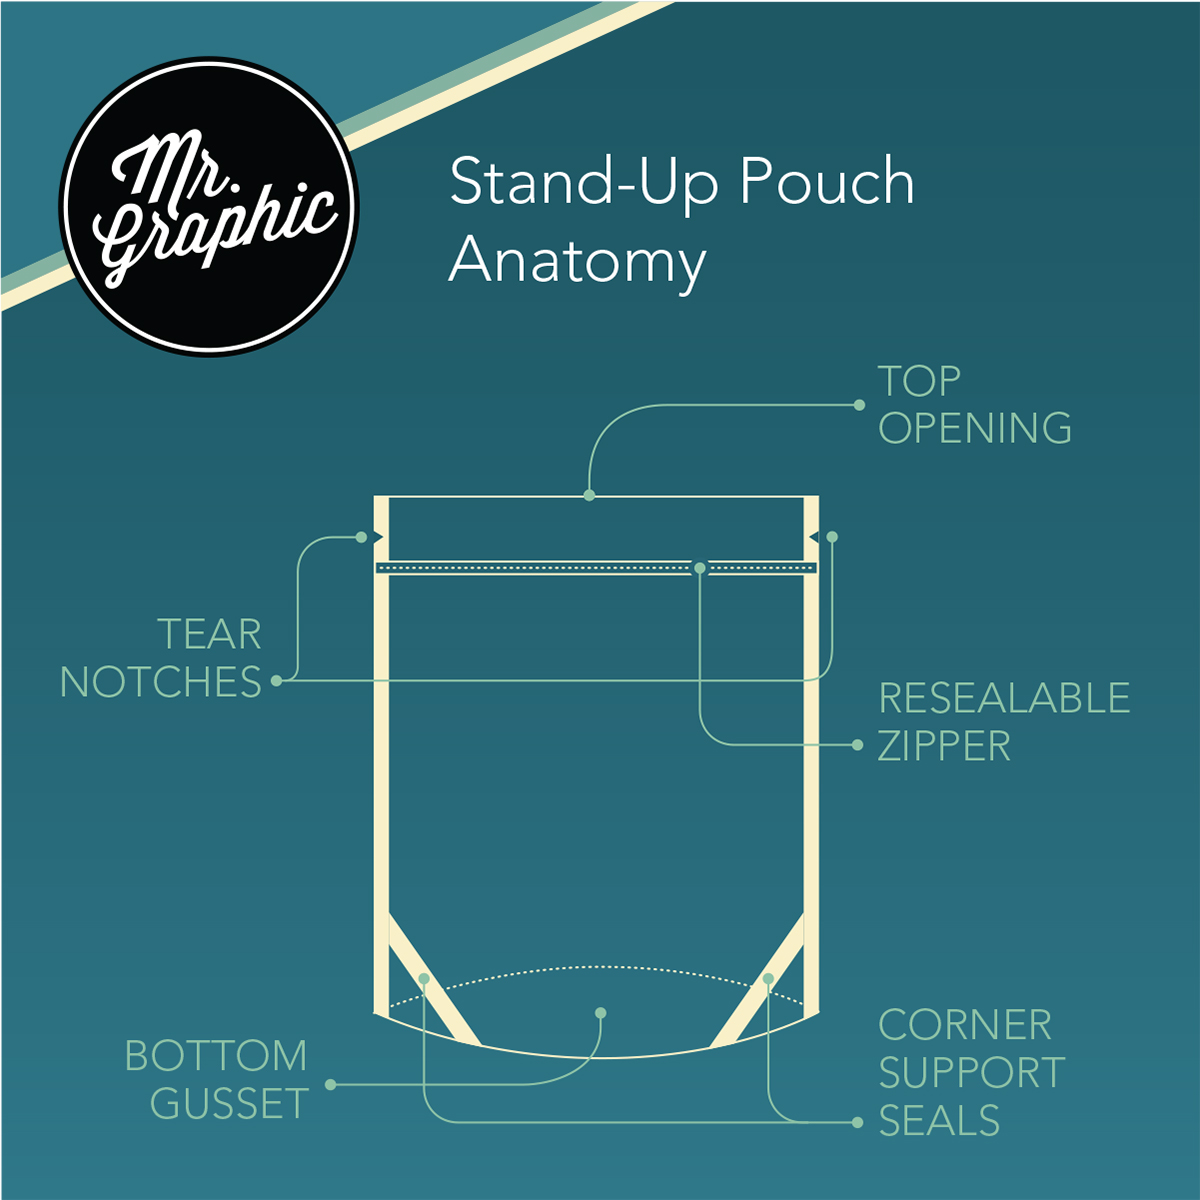 Anatomy of a Stand-up Pouch